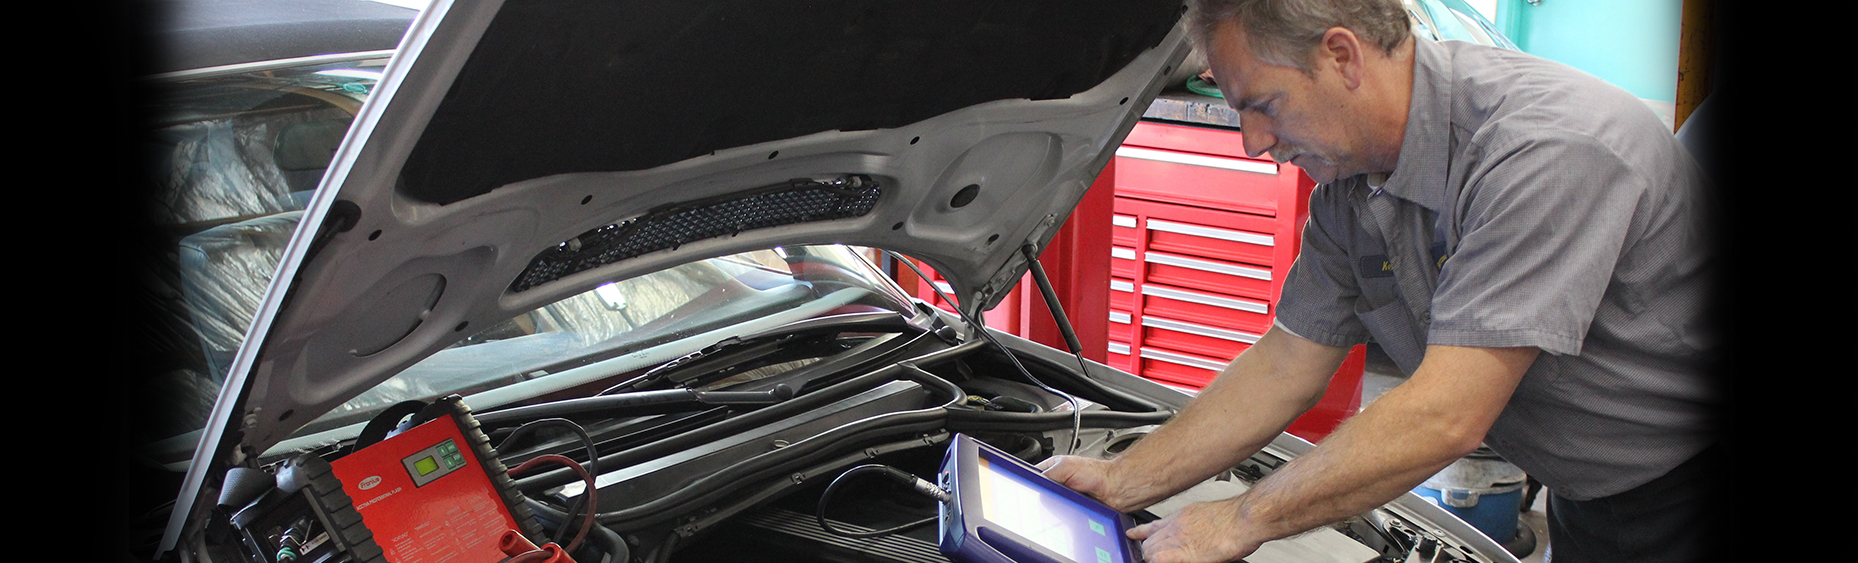 car mechanic diagnostic